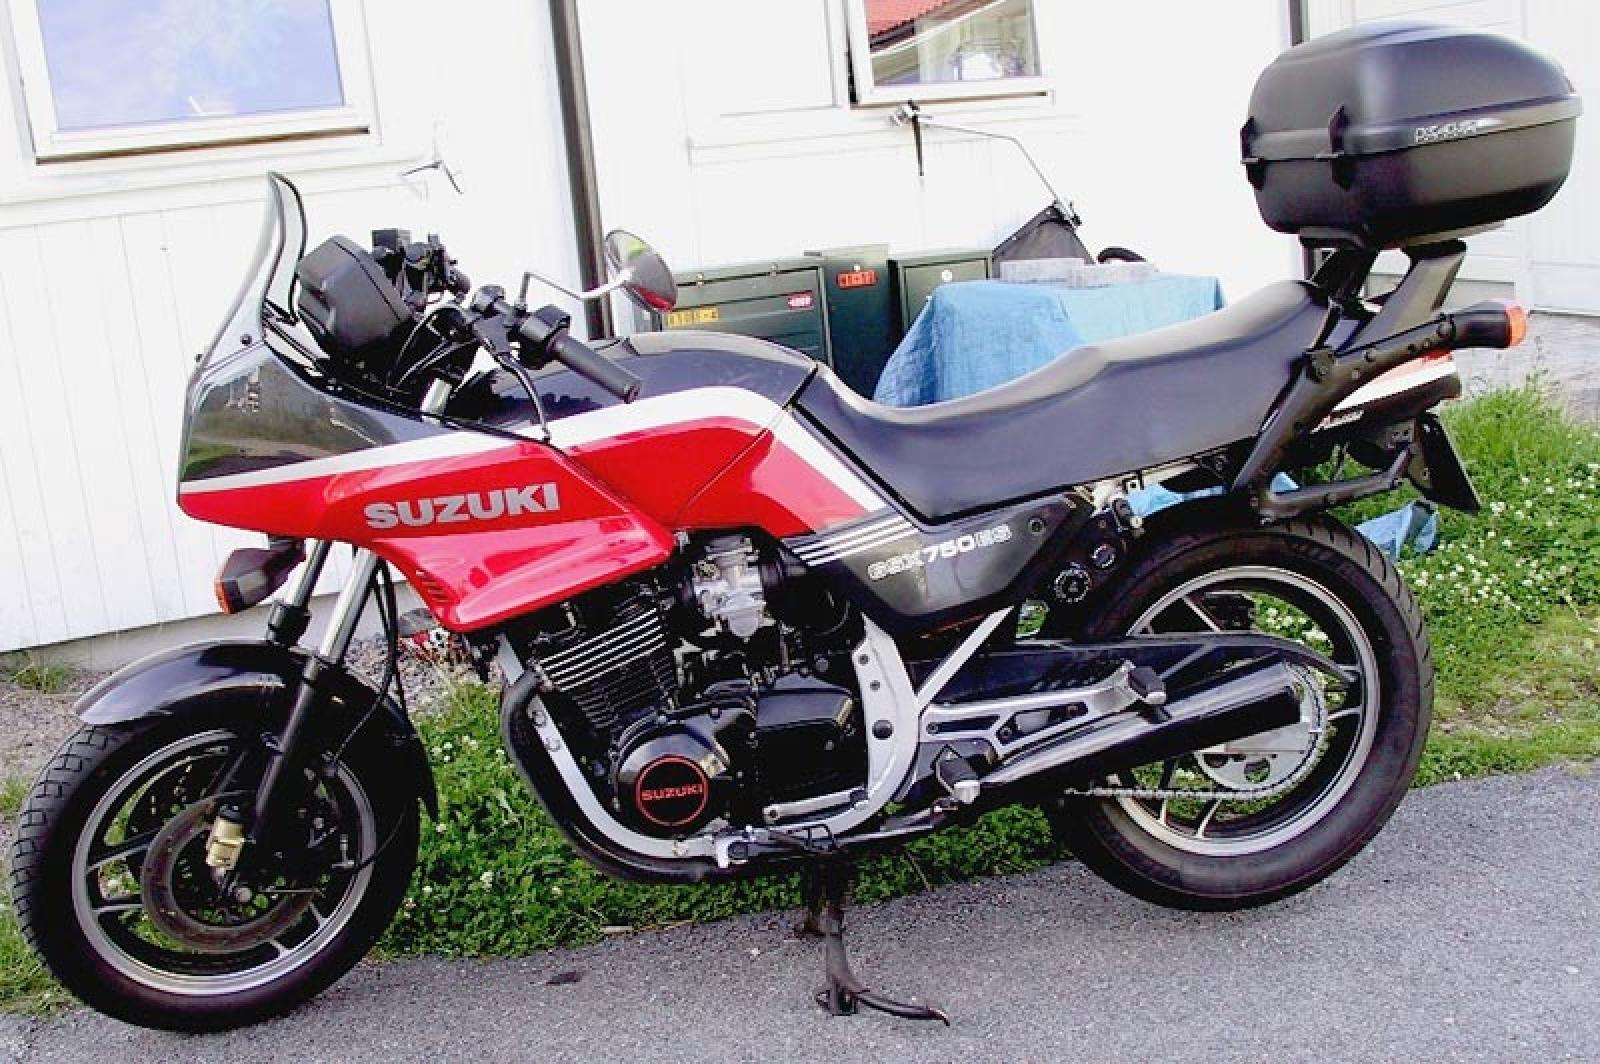 1984 suzuki gsx 750 es moto zombdrive com. Black Bedroom Furniture Sets. Home Design Ideas